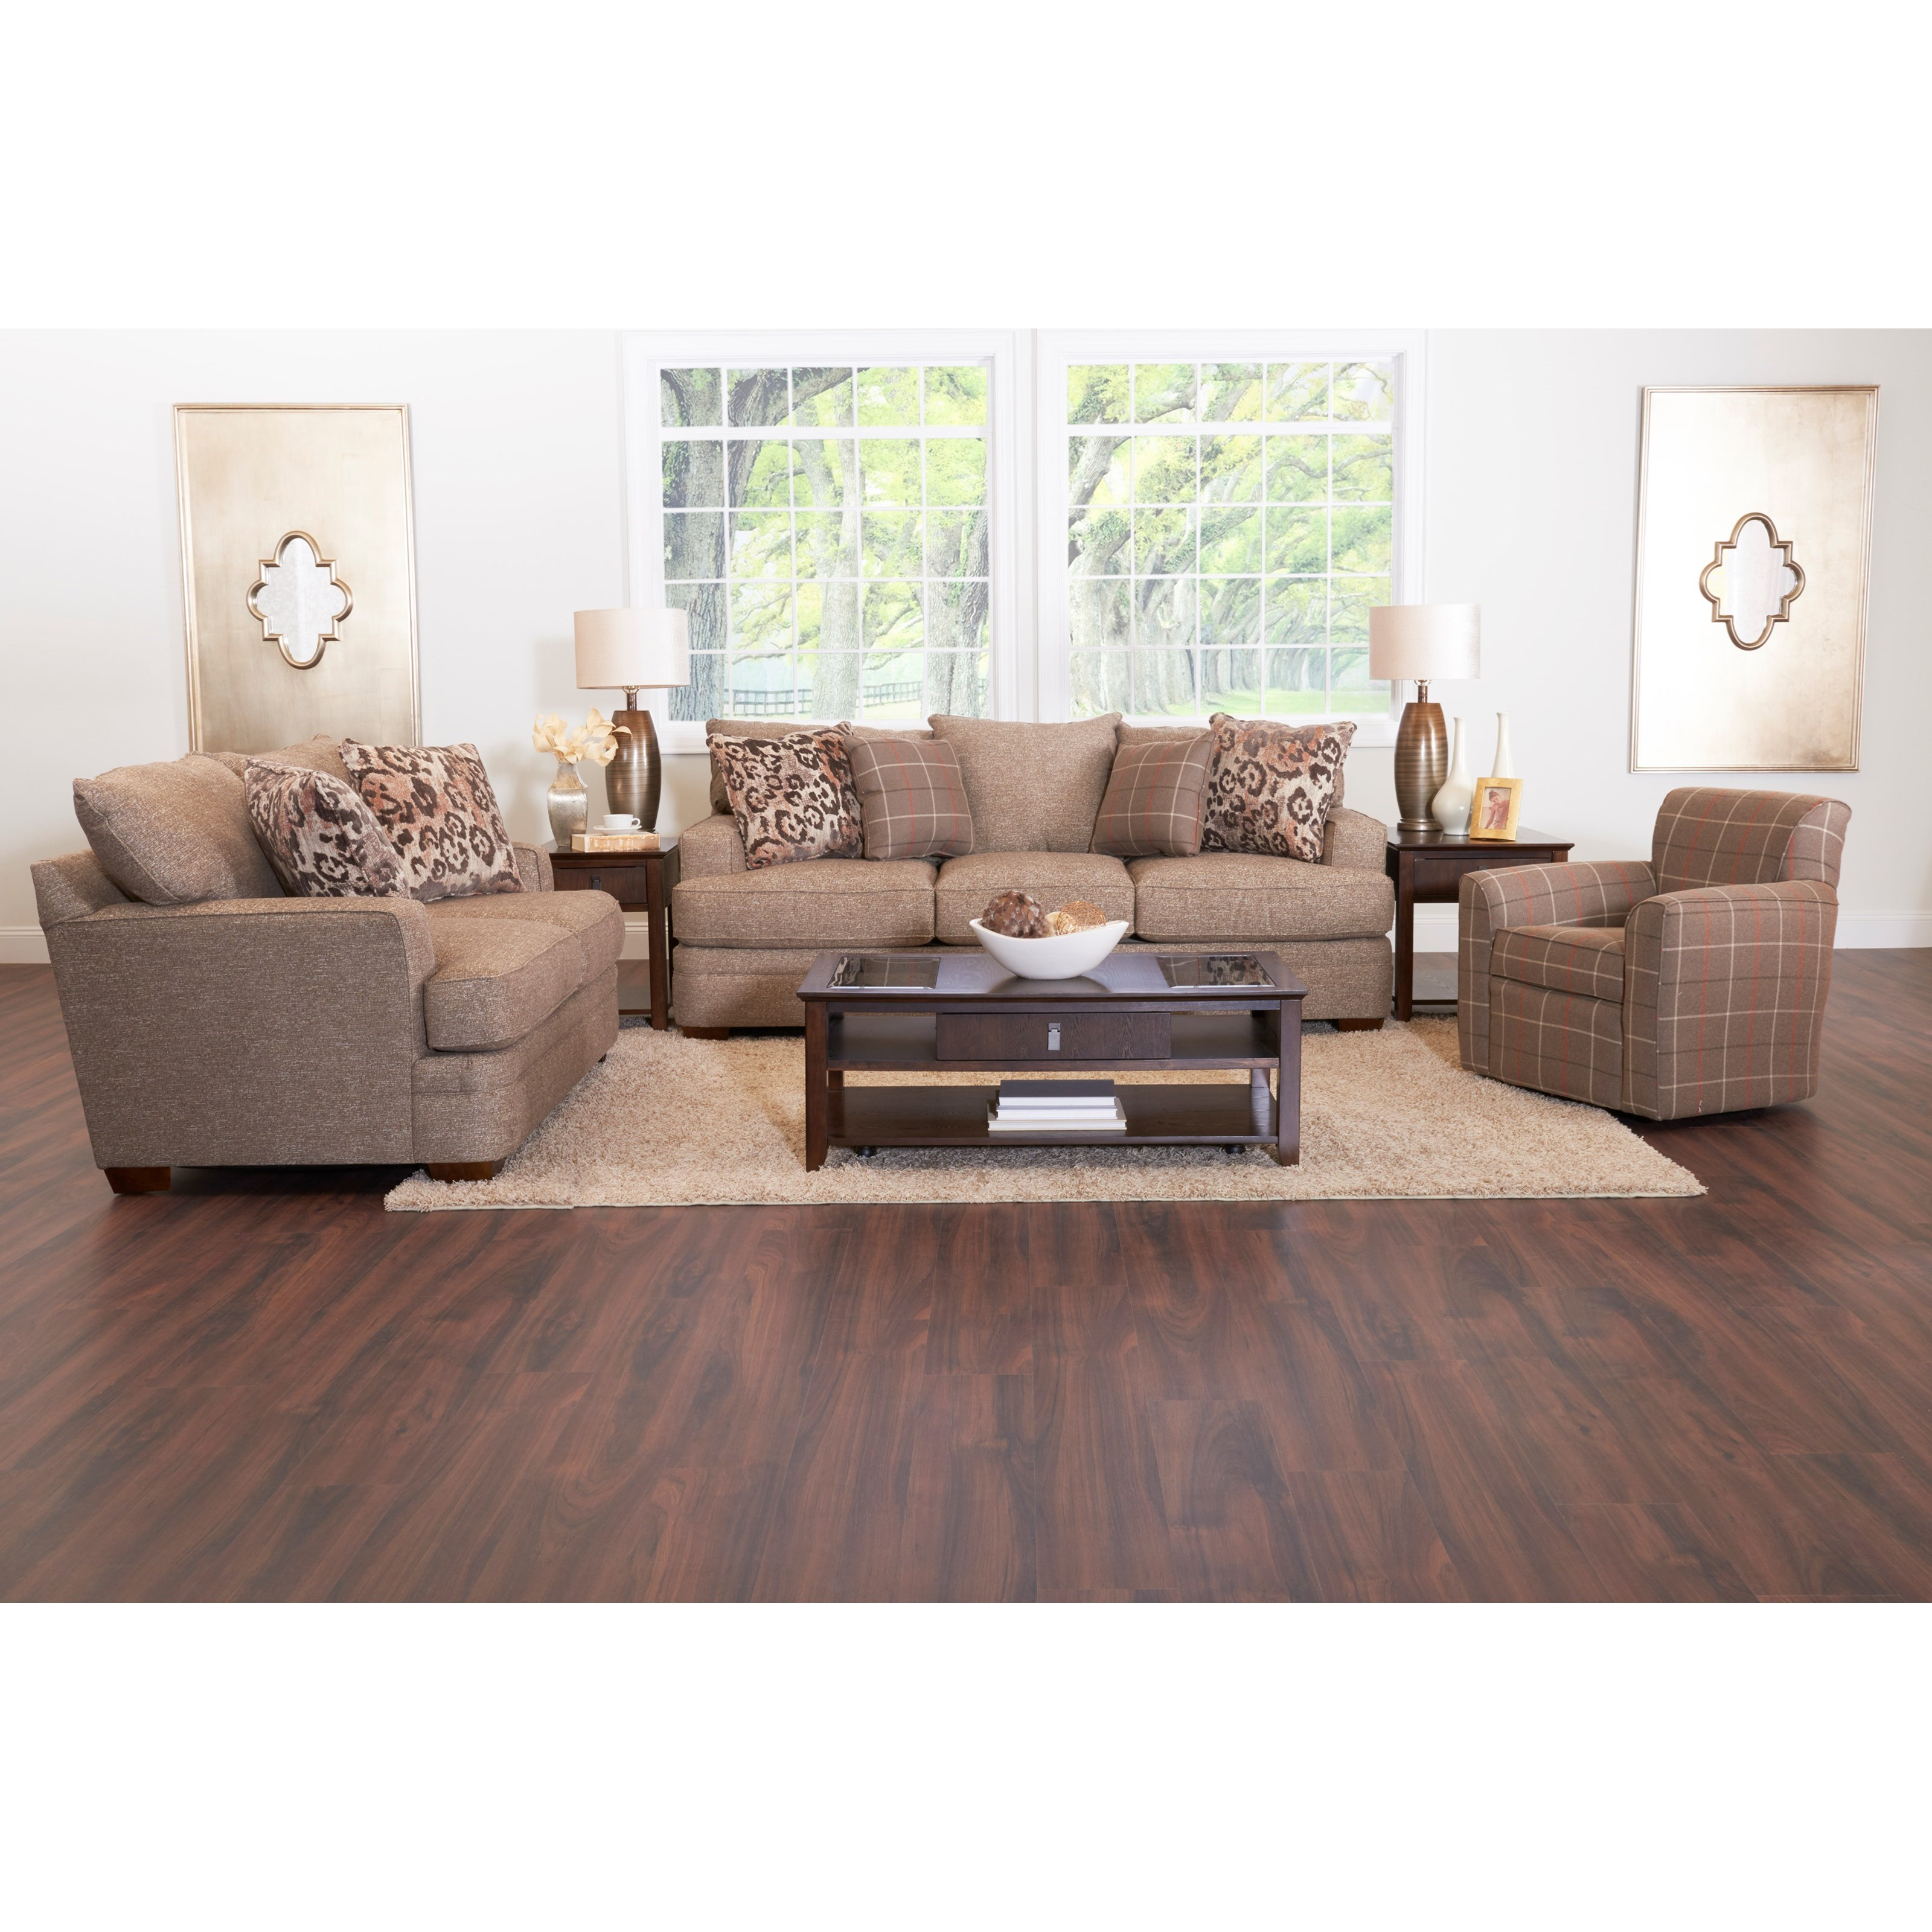 chadwick sofa better sofas roanoke va casual with square track arms morris home